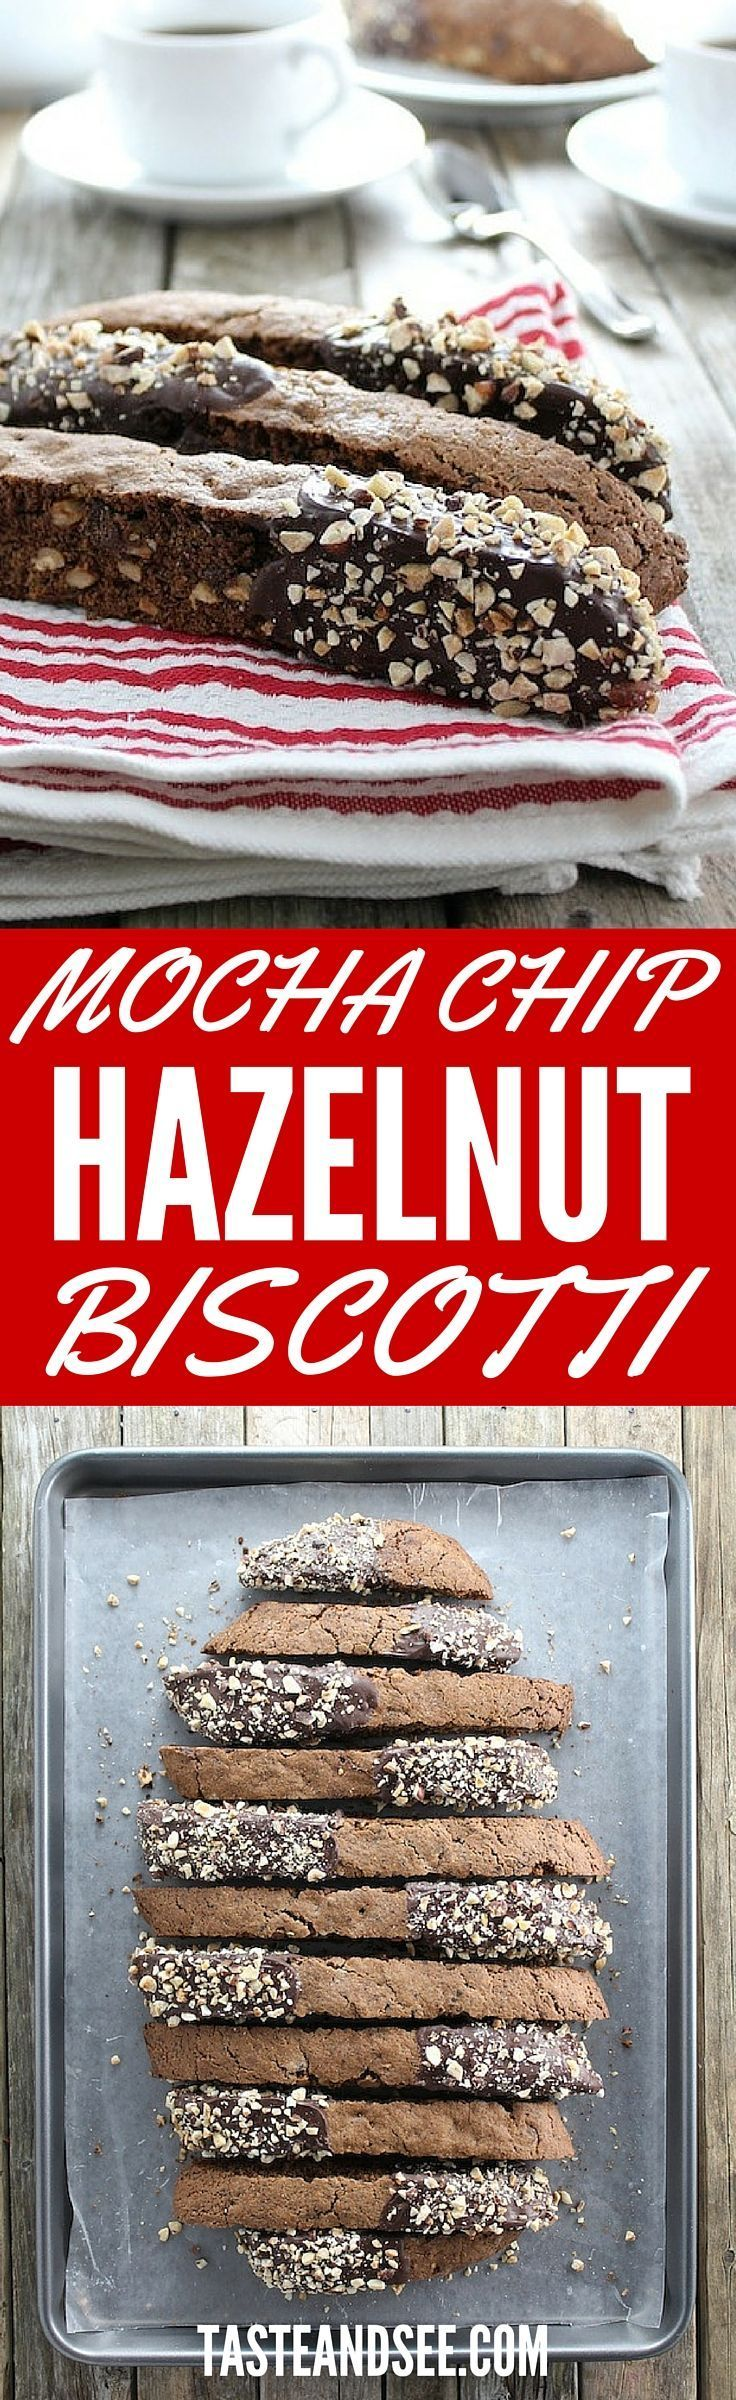 Mocha Chip Hazelnut Biscotti - loaded with chopped hazelnuts, chocolate chips, and coffee, glazed in melted chocolate and topped w/toasted hazelnuts.  http://tasteandsee.com